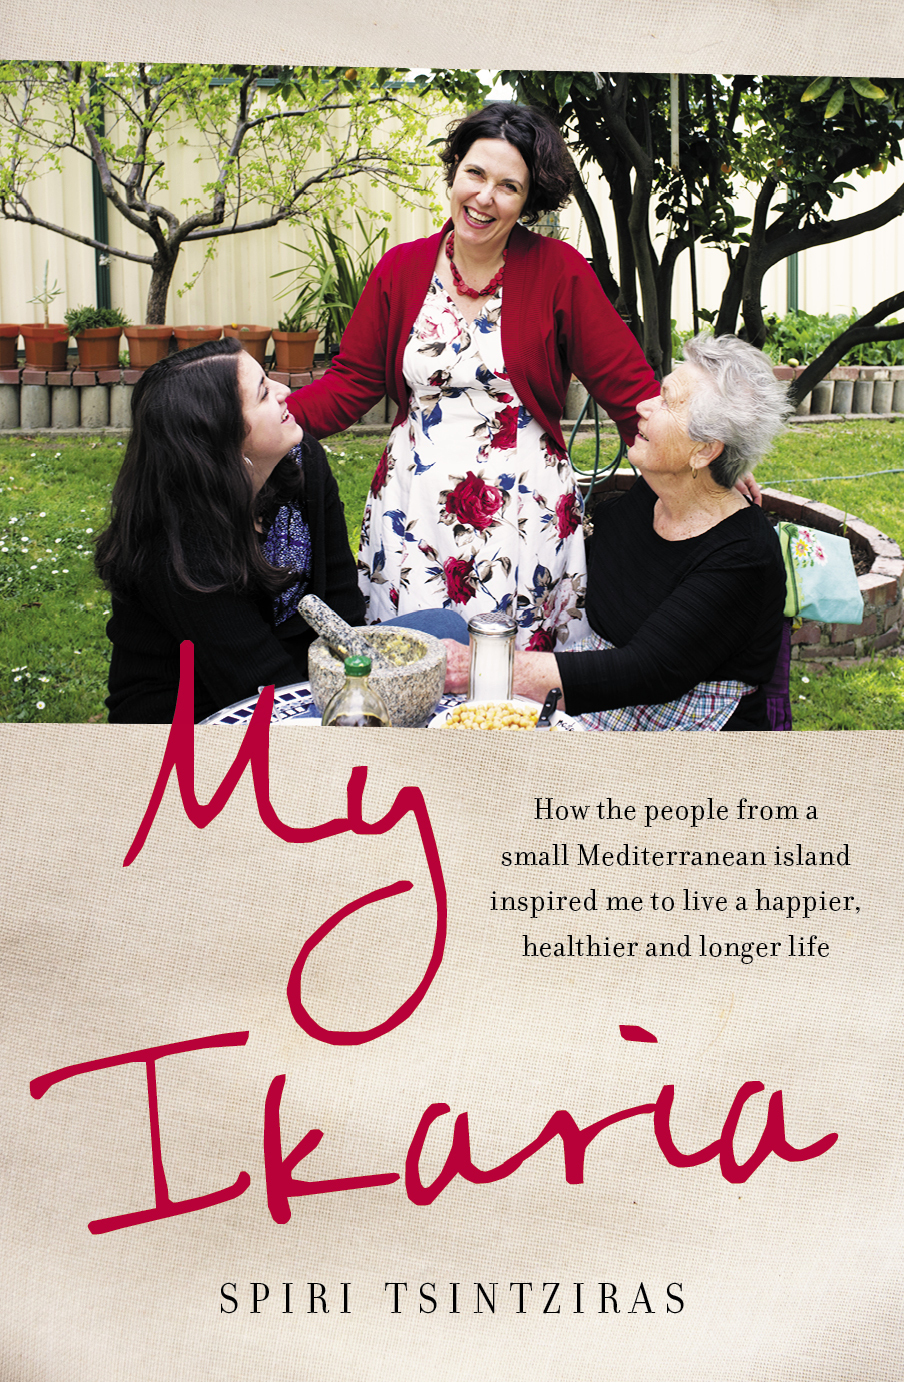 My Ikaria How the people from a small Mediterranean island inspired me to live a happier, healthier and longer life